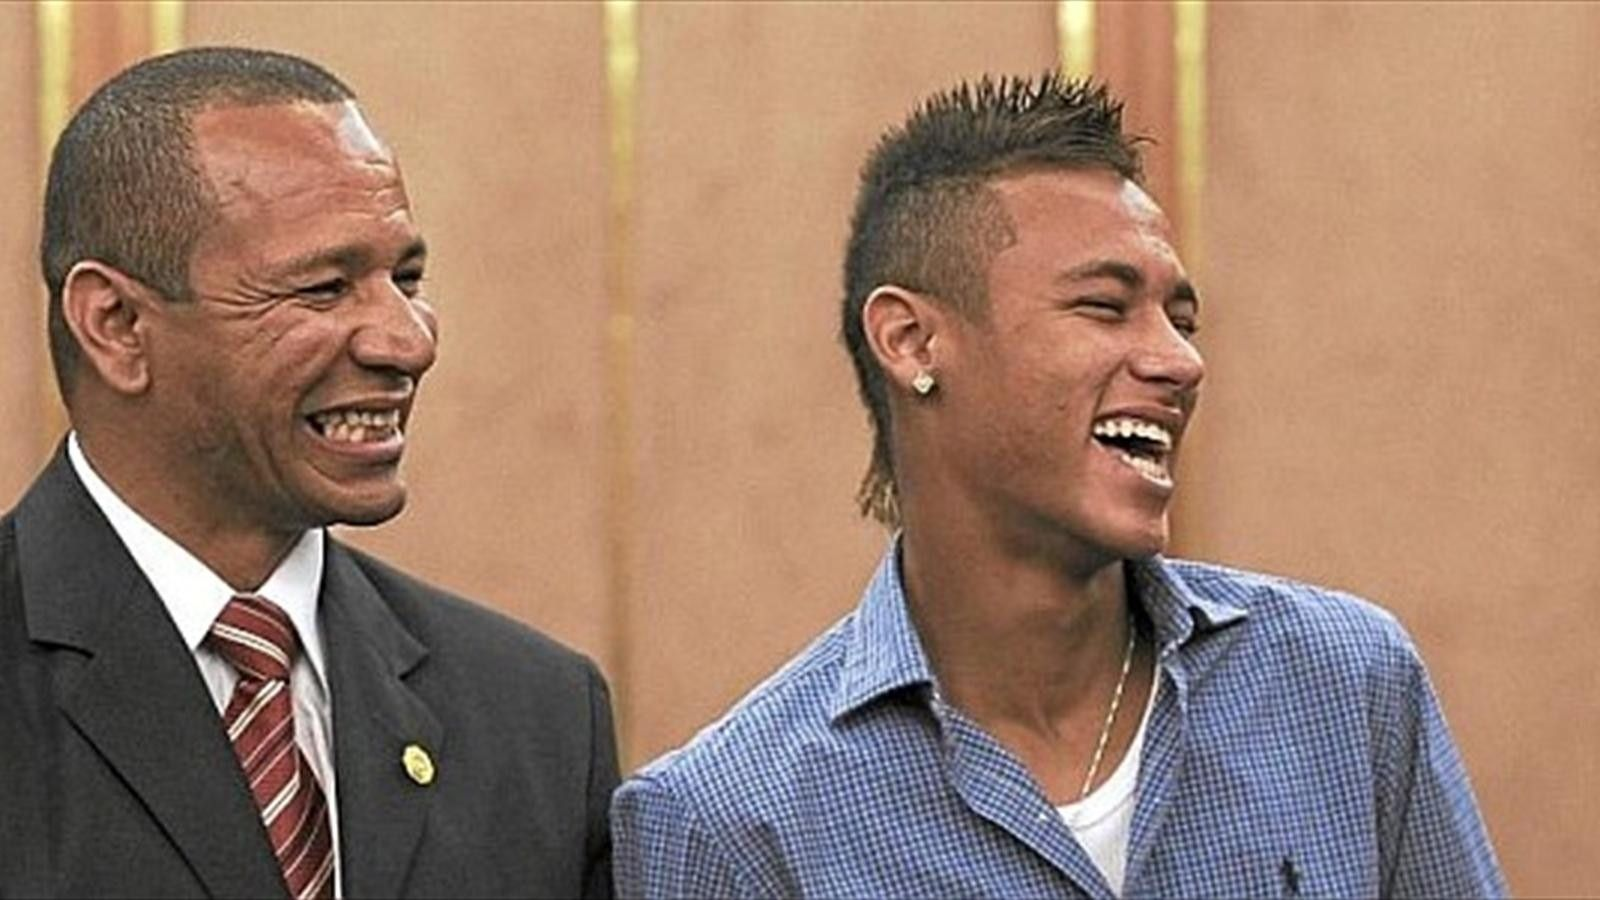 Neymar's dad: If we can't work in Spain, we will have to leave